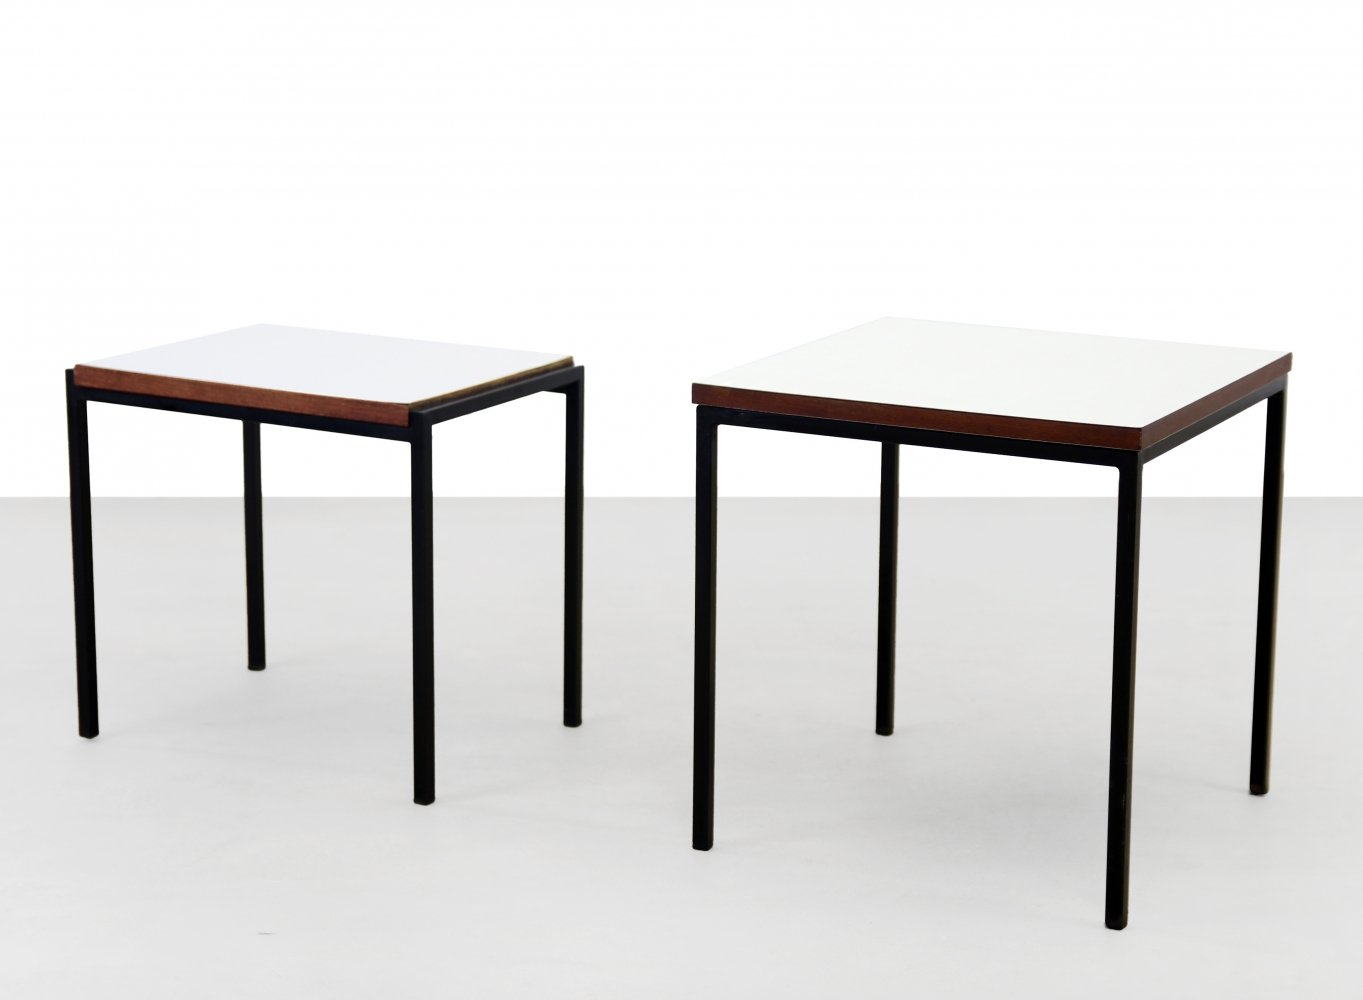 Pair of side tables by Cees Braakman for Pastoe, 1960s